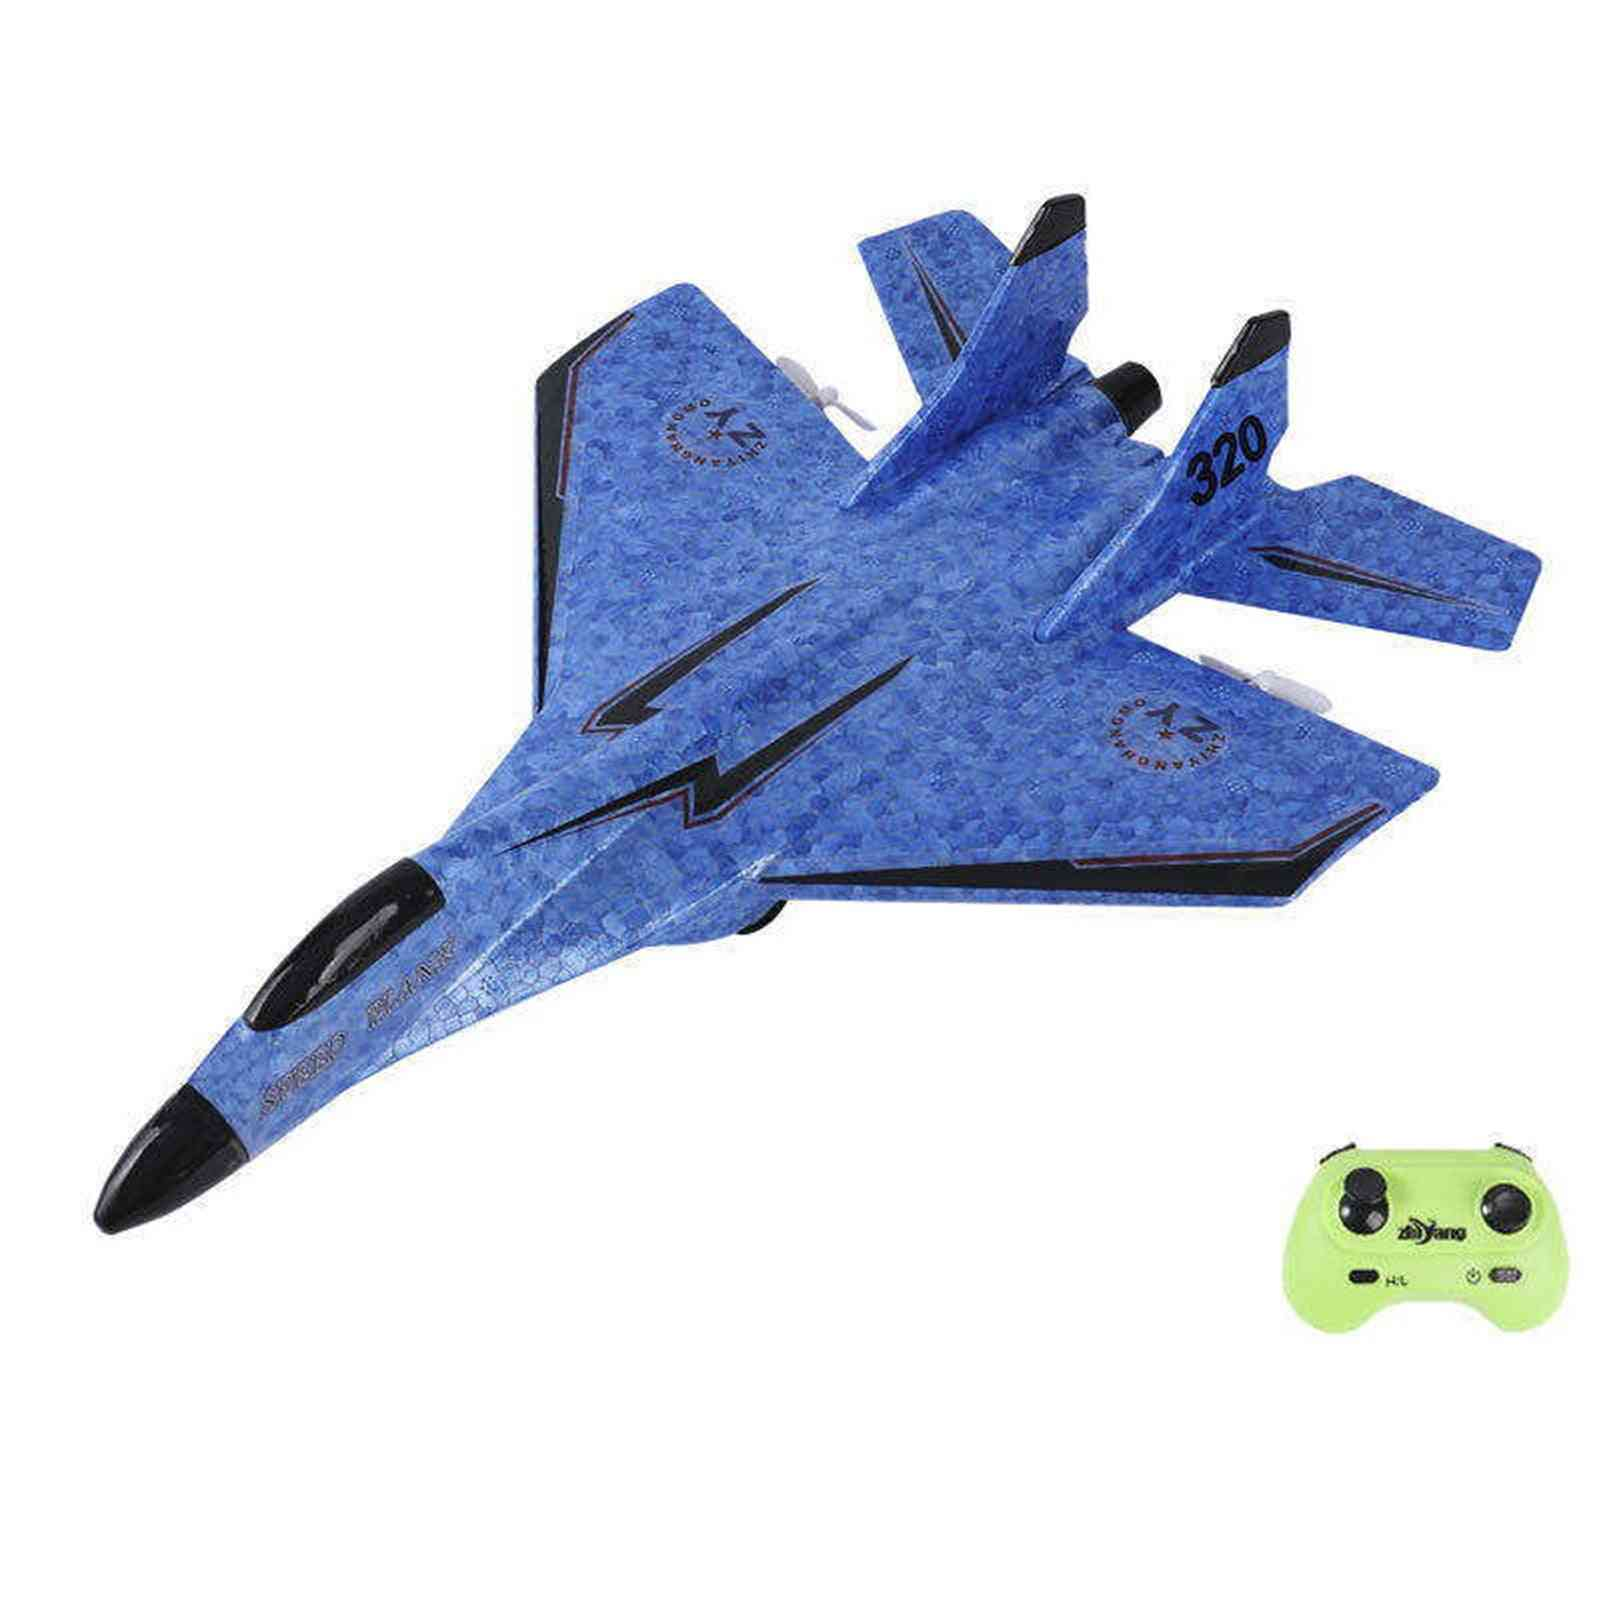 Rc Plane, Epp Foam Electric Radio Remote Control, Tail Pusher Quadcopter Glider Aircraft.